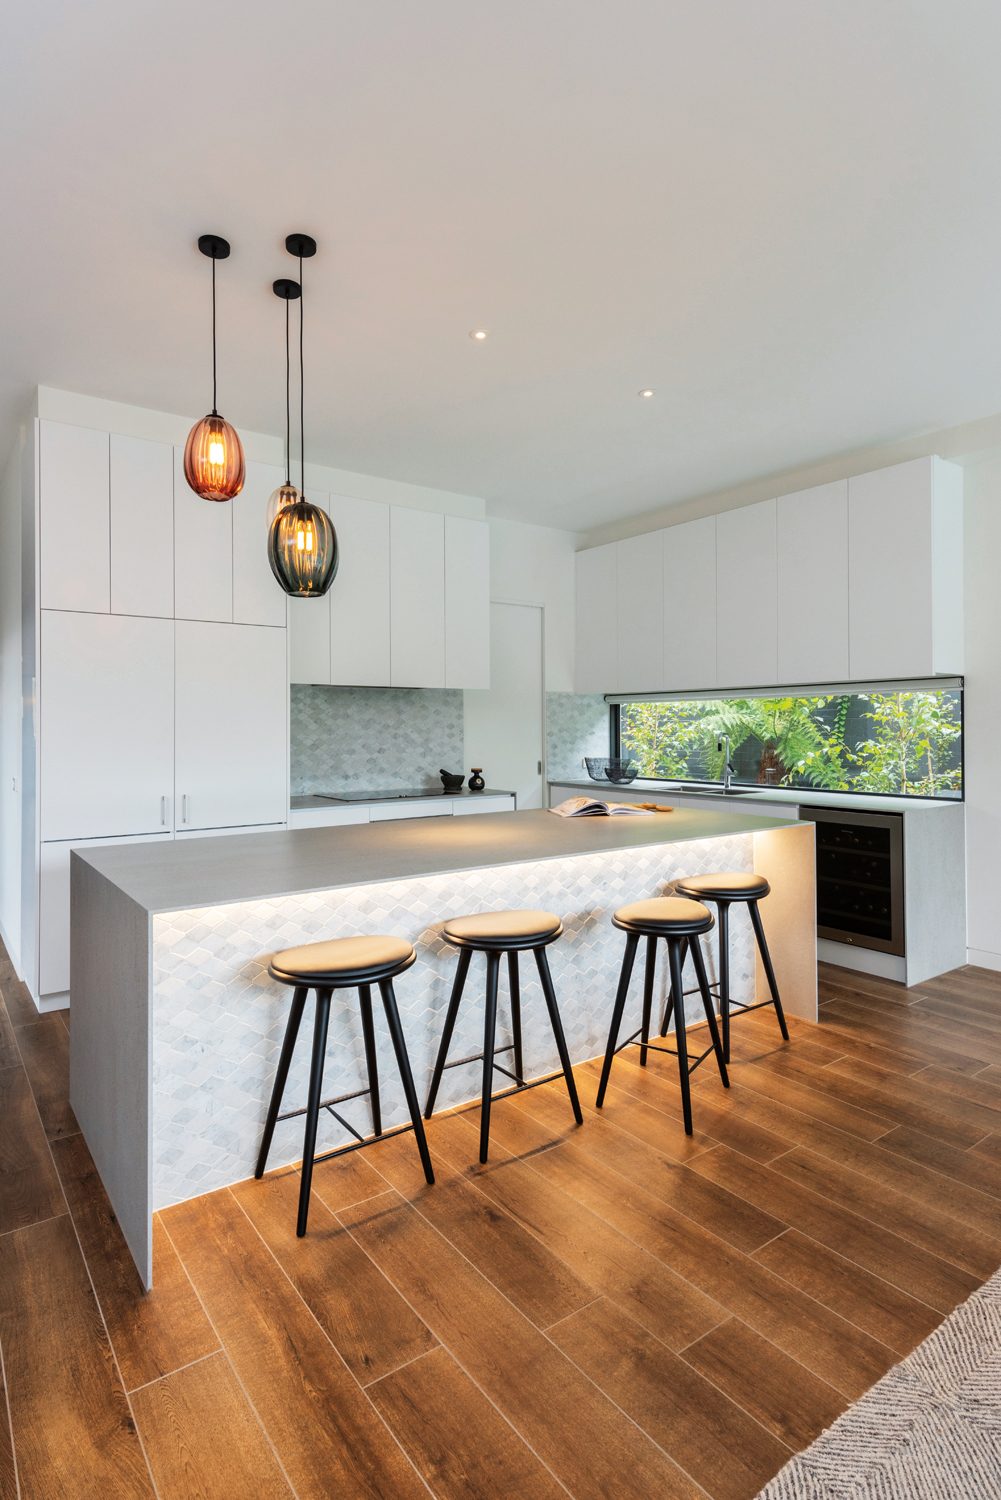 Mixing up your kitchen style